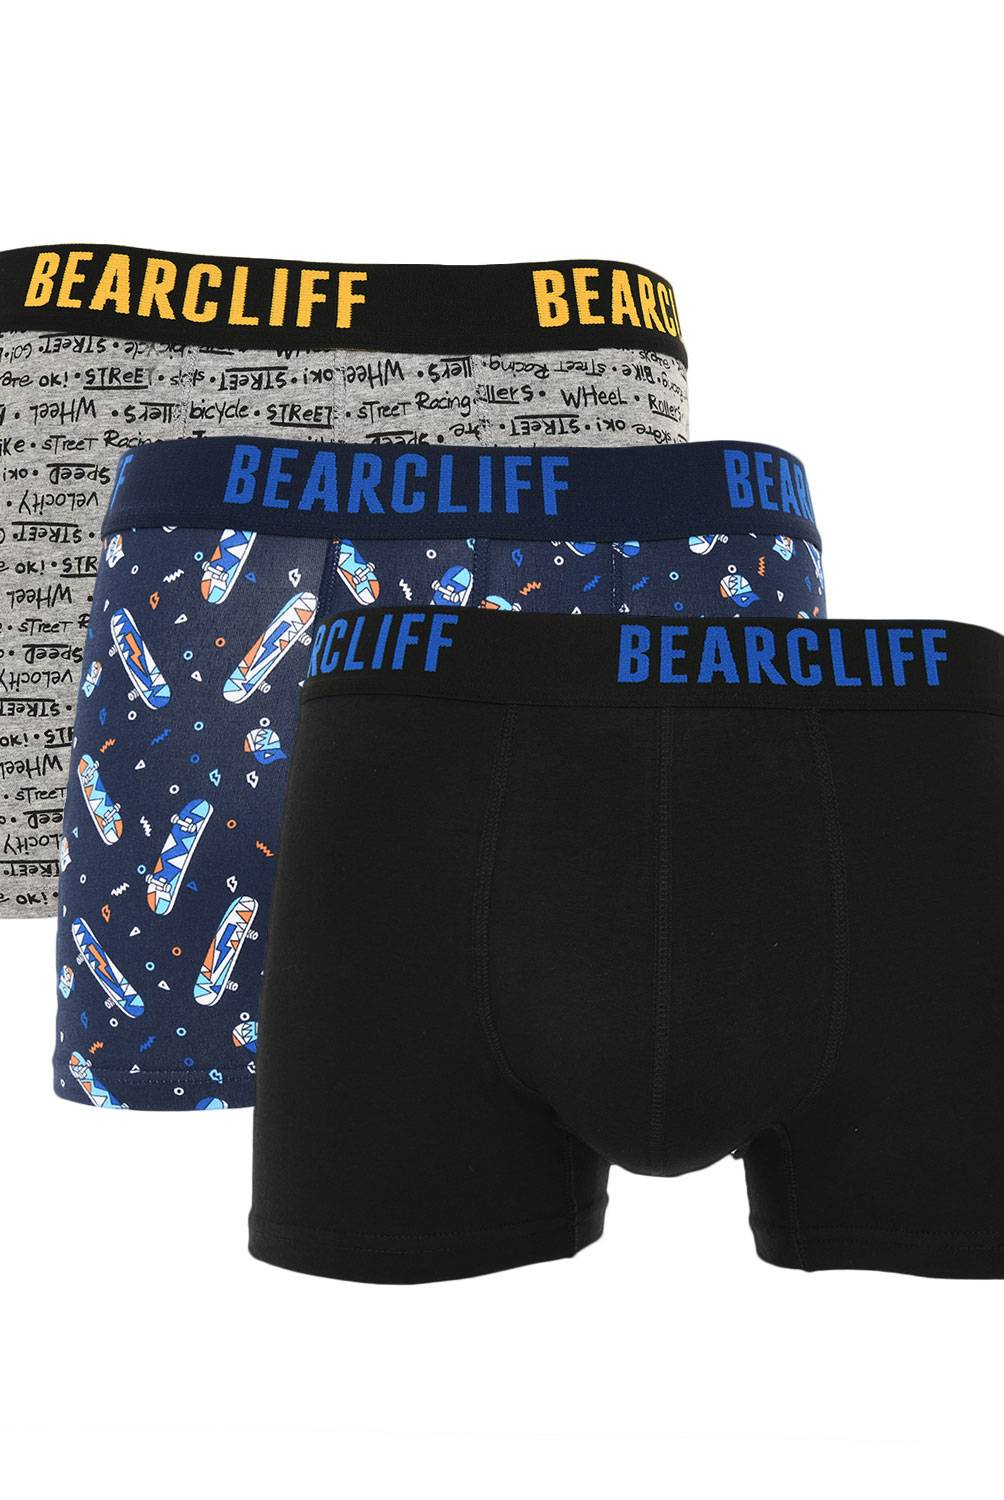 BEARCLIFF - Boxer Pack x3 Hombre